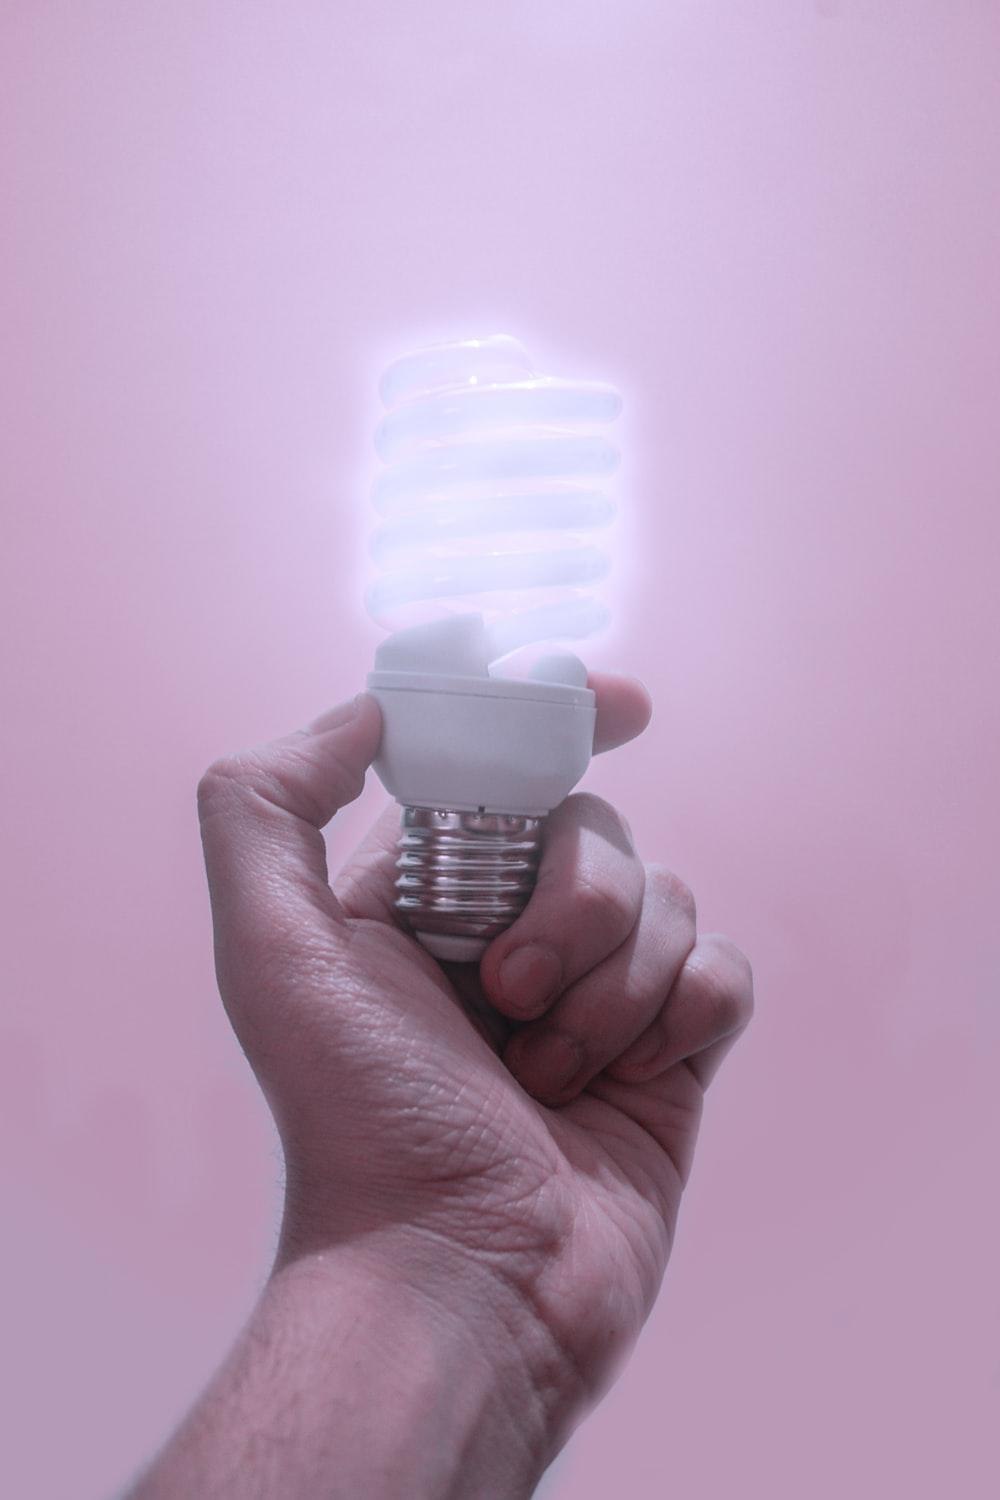 person holding CFL light bulb turned-on